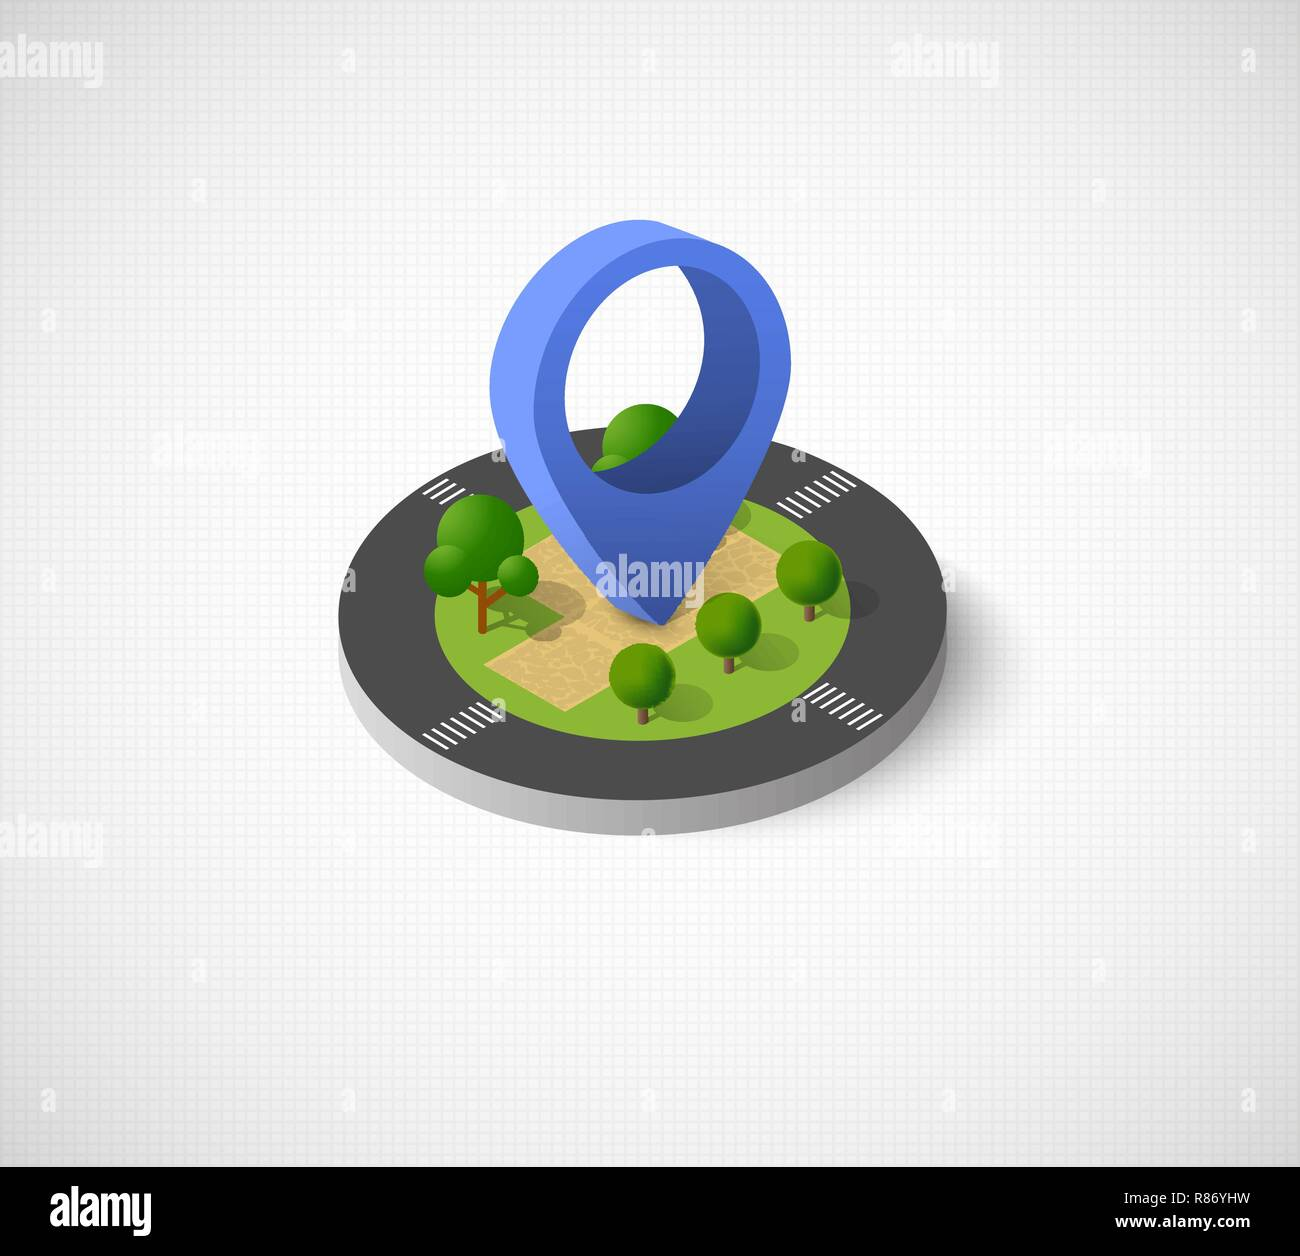 Isometric vector icon illustration of a modern city dimensional views of a town with direction indicator - Stock Vector